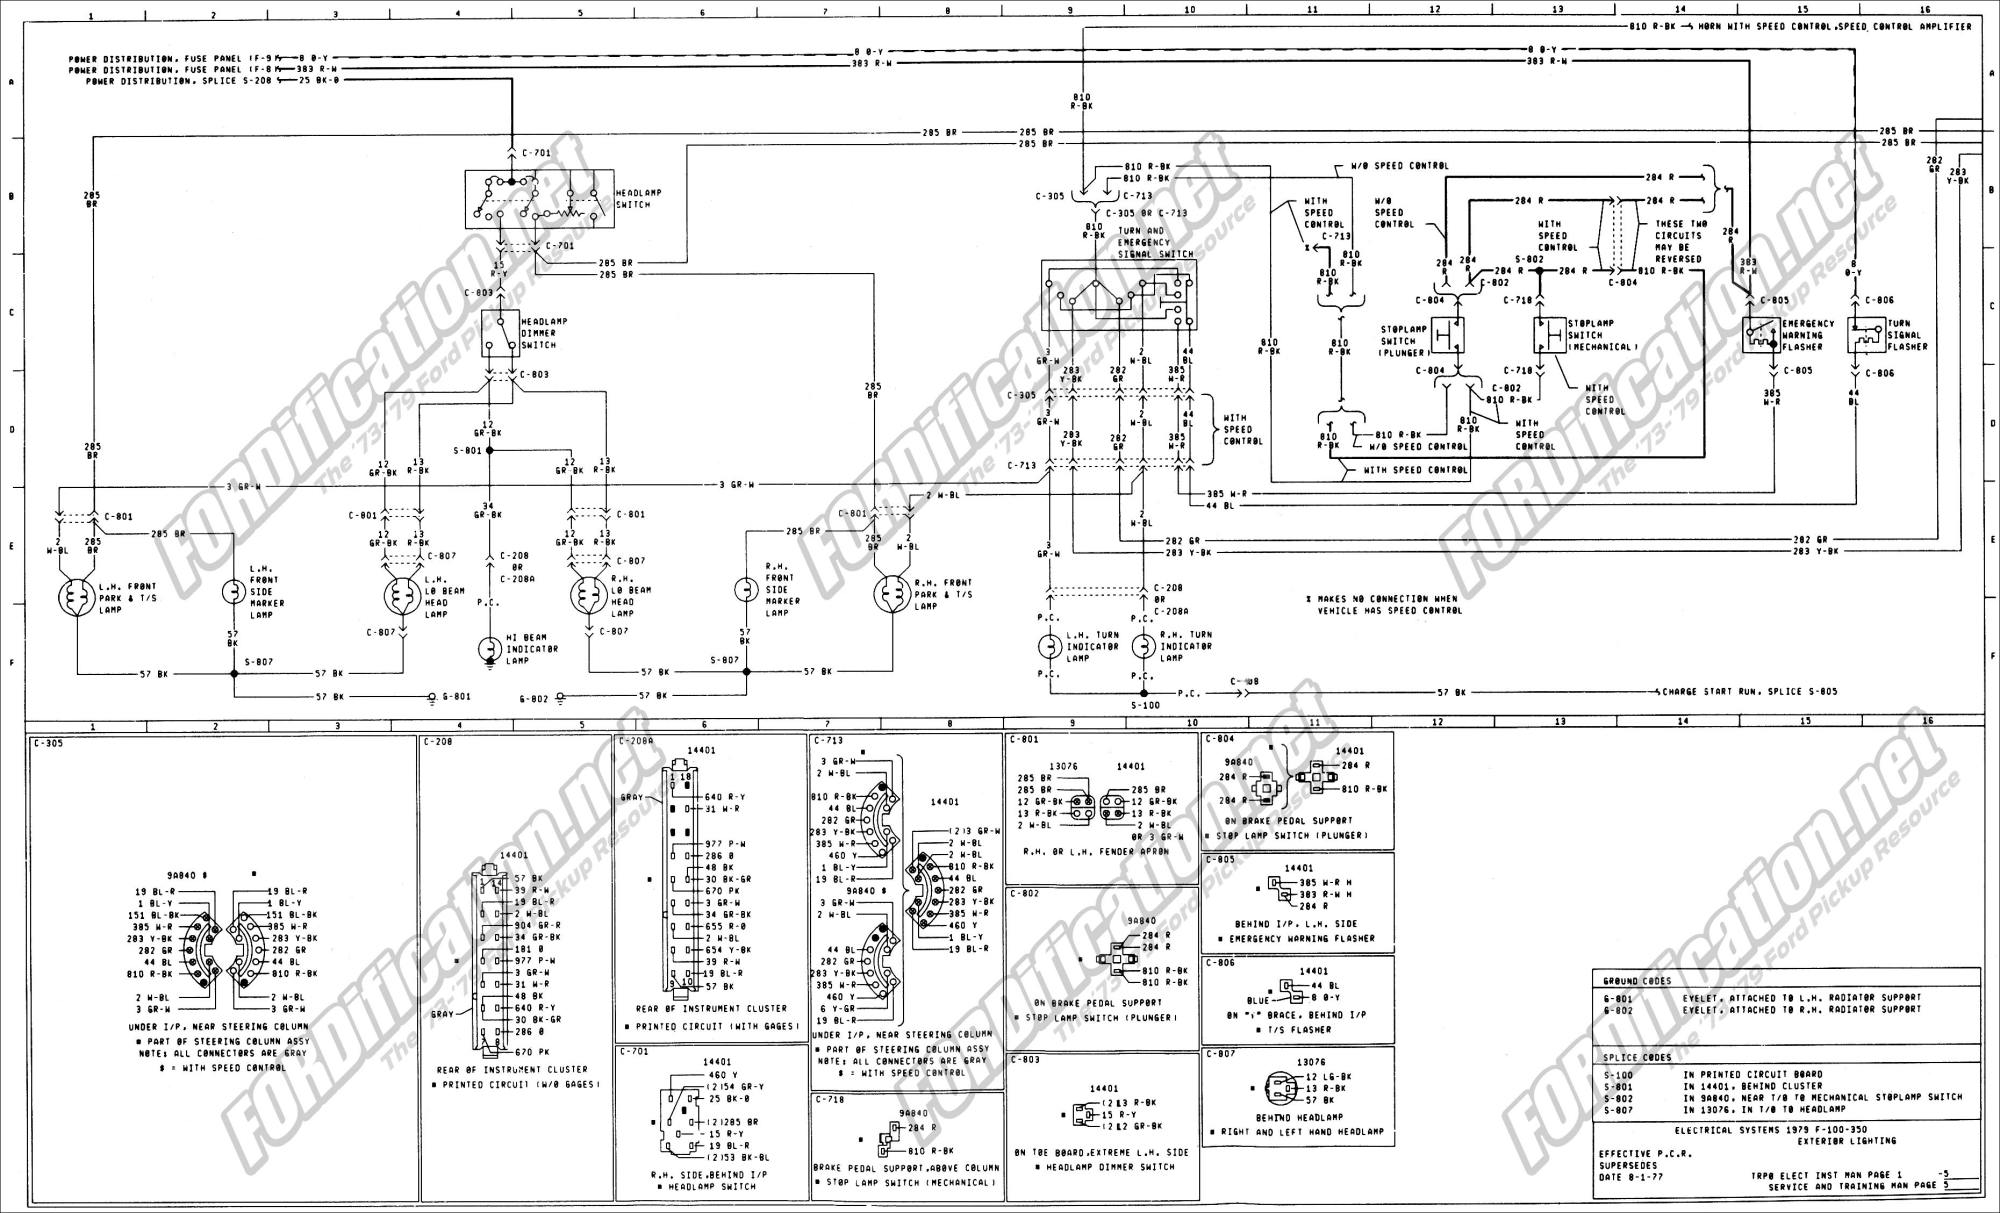 hight resolution of 1978 ford f 150 wiring diagram simple wiring diagram rh david huggett co uk ford f150